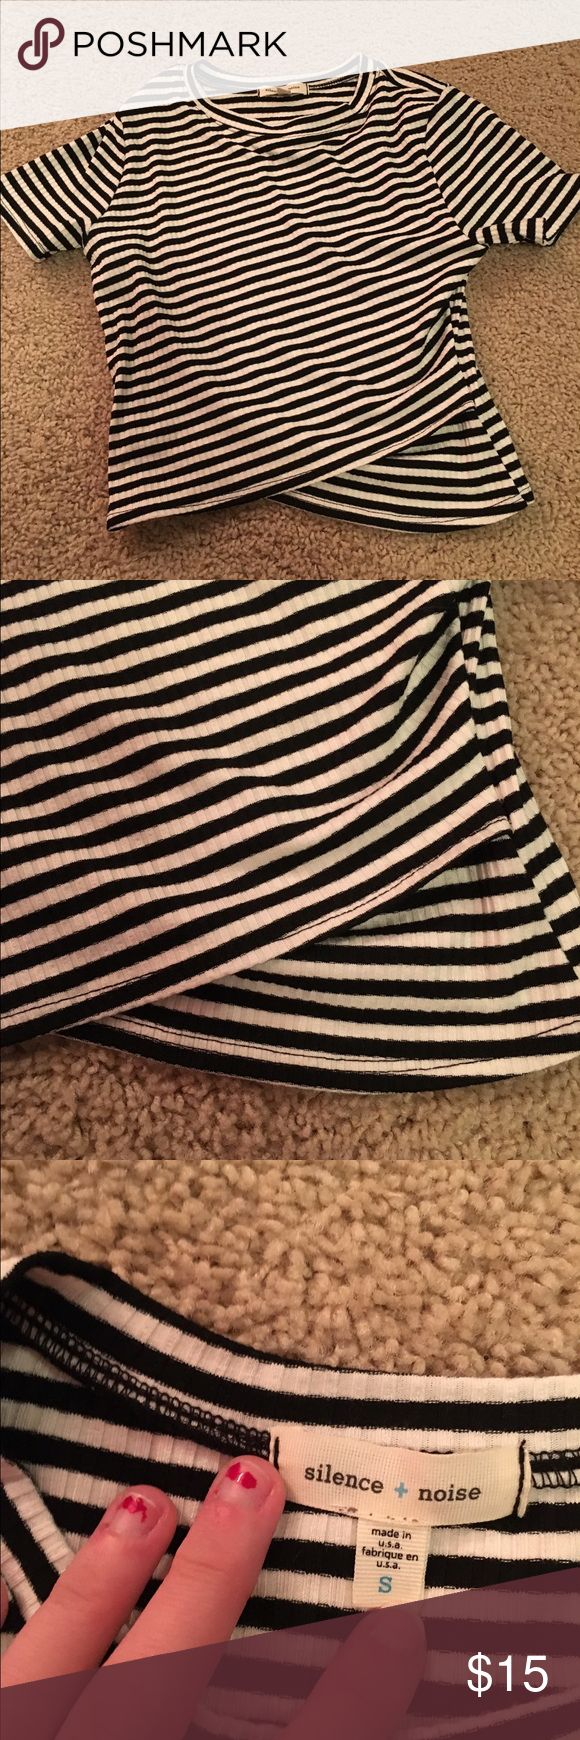 Stripped black and white crop top short sleeve Stripped black and white crop top short sleeve never worn Urban Outfitters Tops Crop Tops